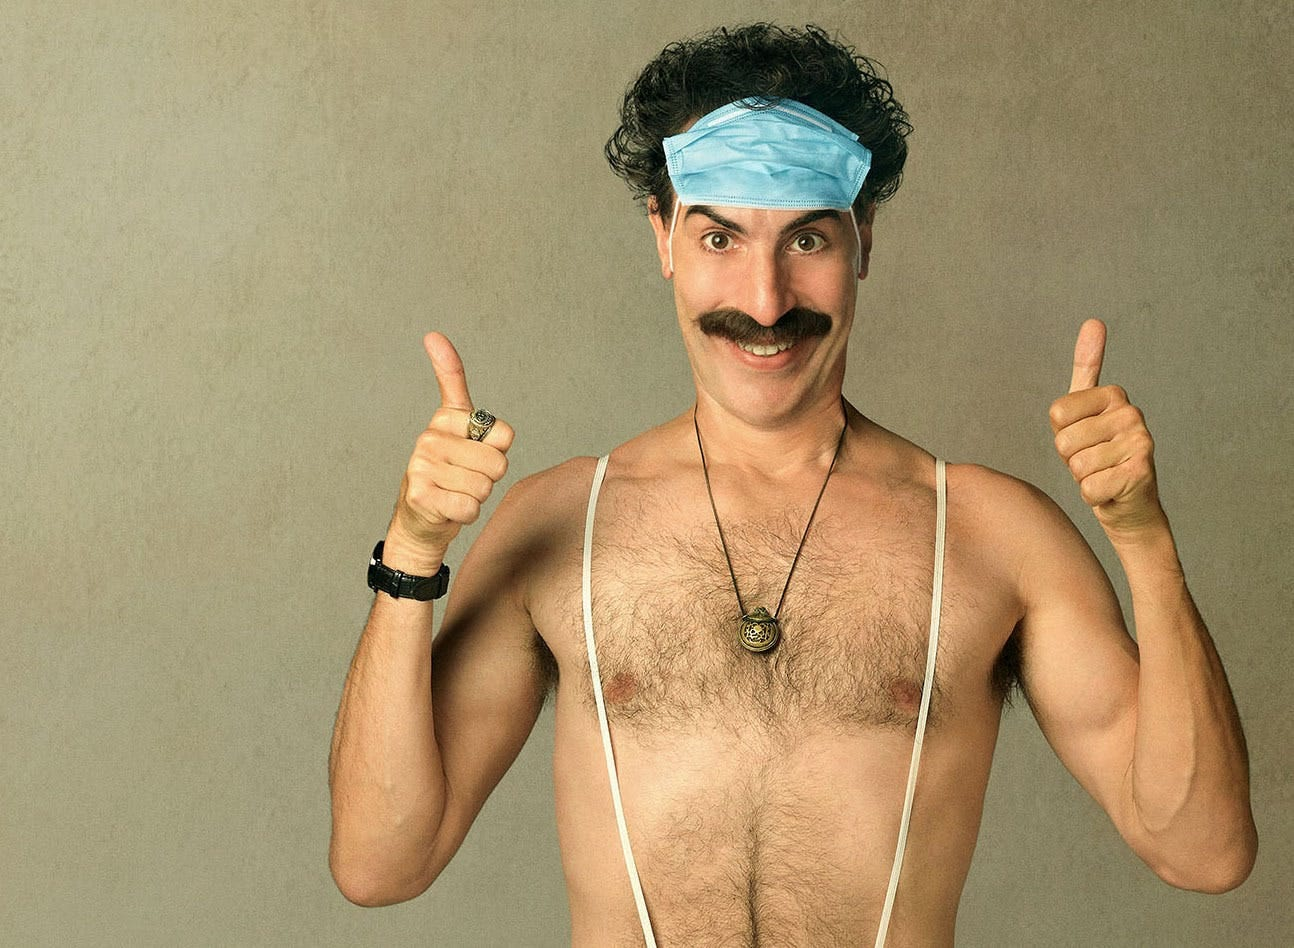 Borat 2: Sacha Baron Cohen is back to mess with your head — and heart |  Star Tribune